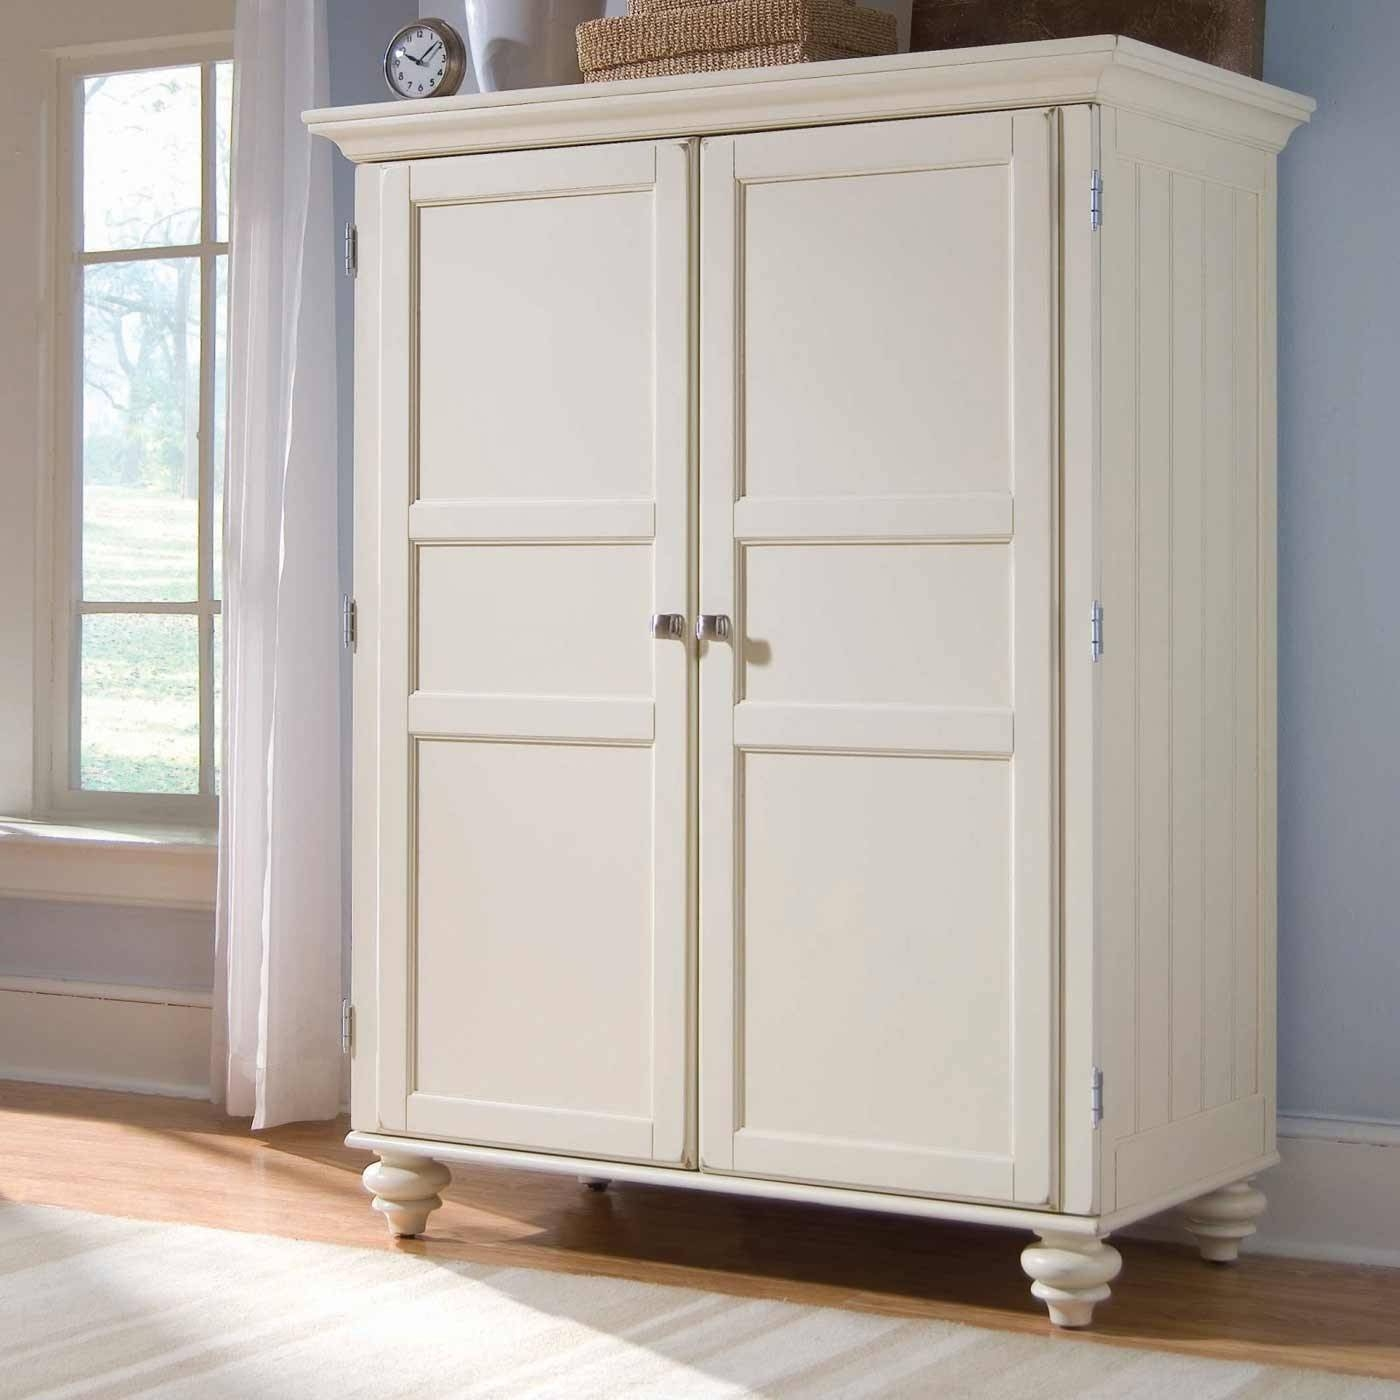 Furniture: Fancy Wardrobe Armoire For Wardrobe Organizer Idea intended for Cheap Wardrobes (Image 10 of 15)